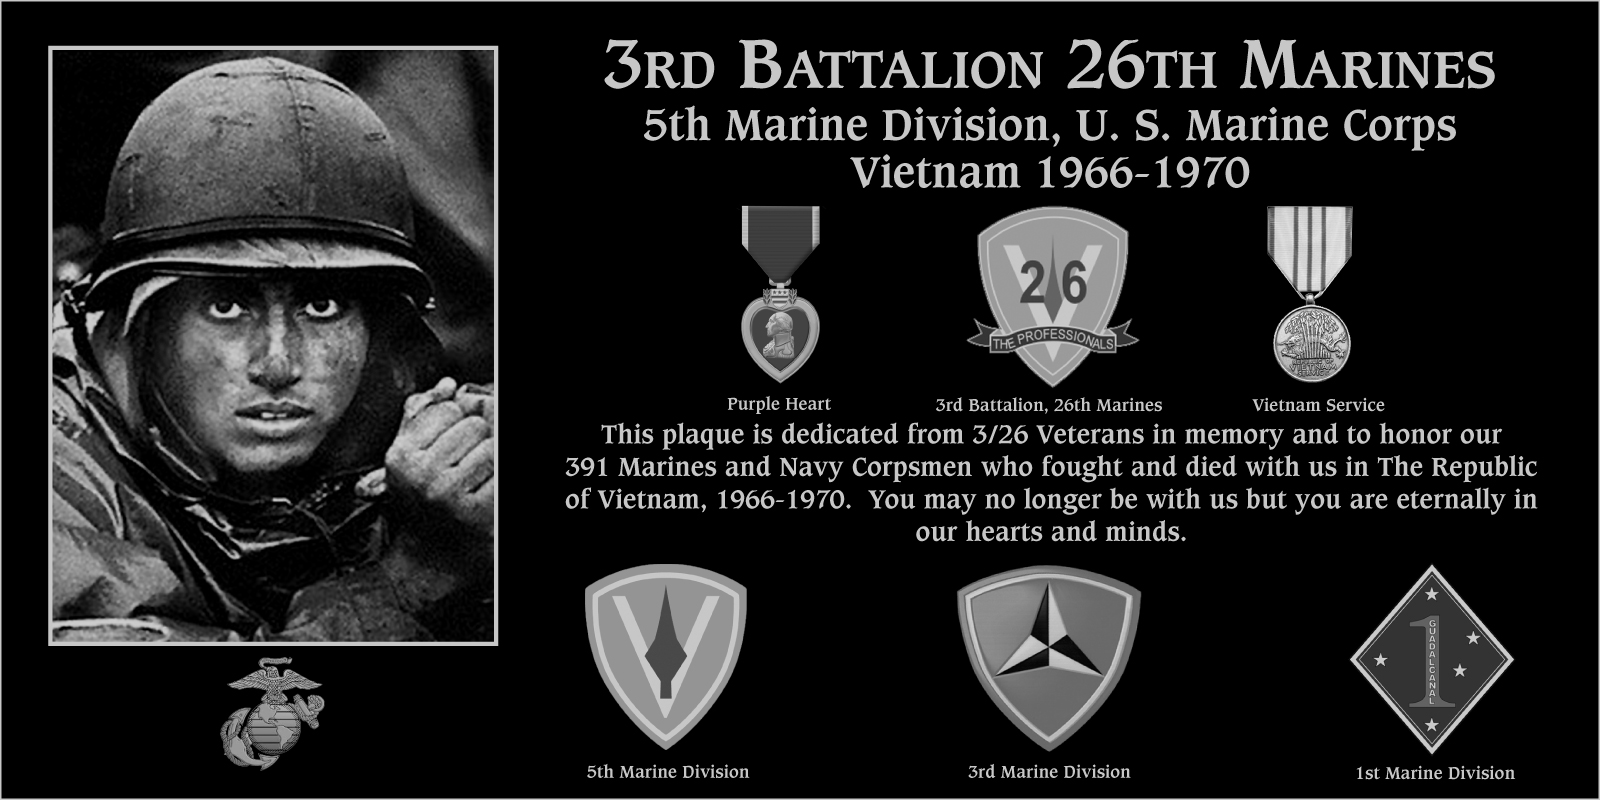 25th Marines 2nd Battalion